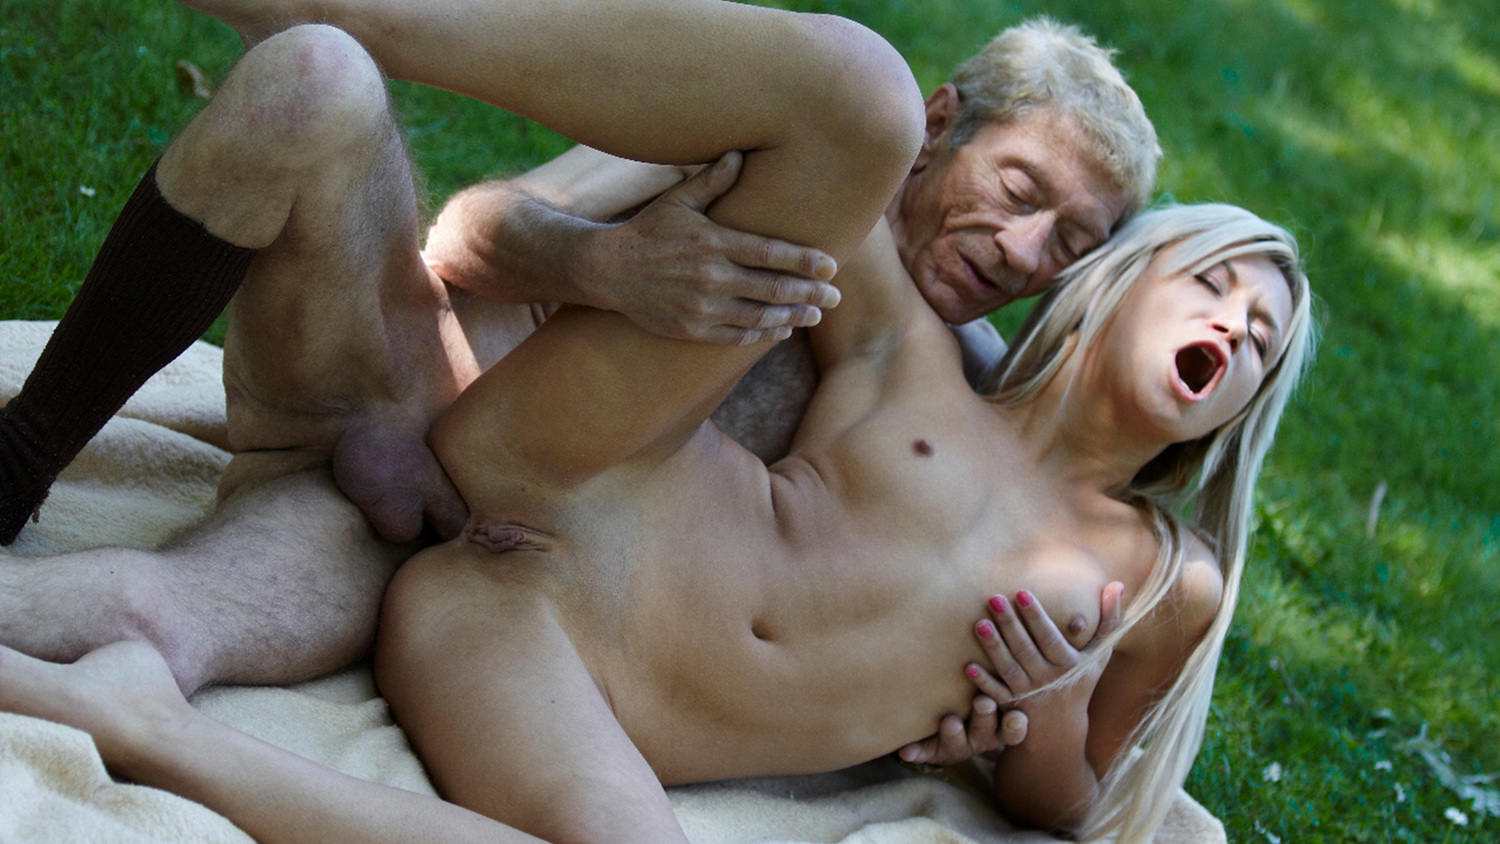 Teen And Old Man Sex 18